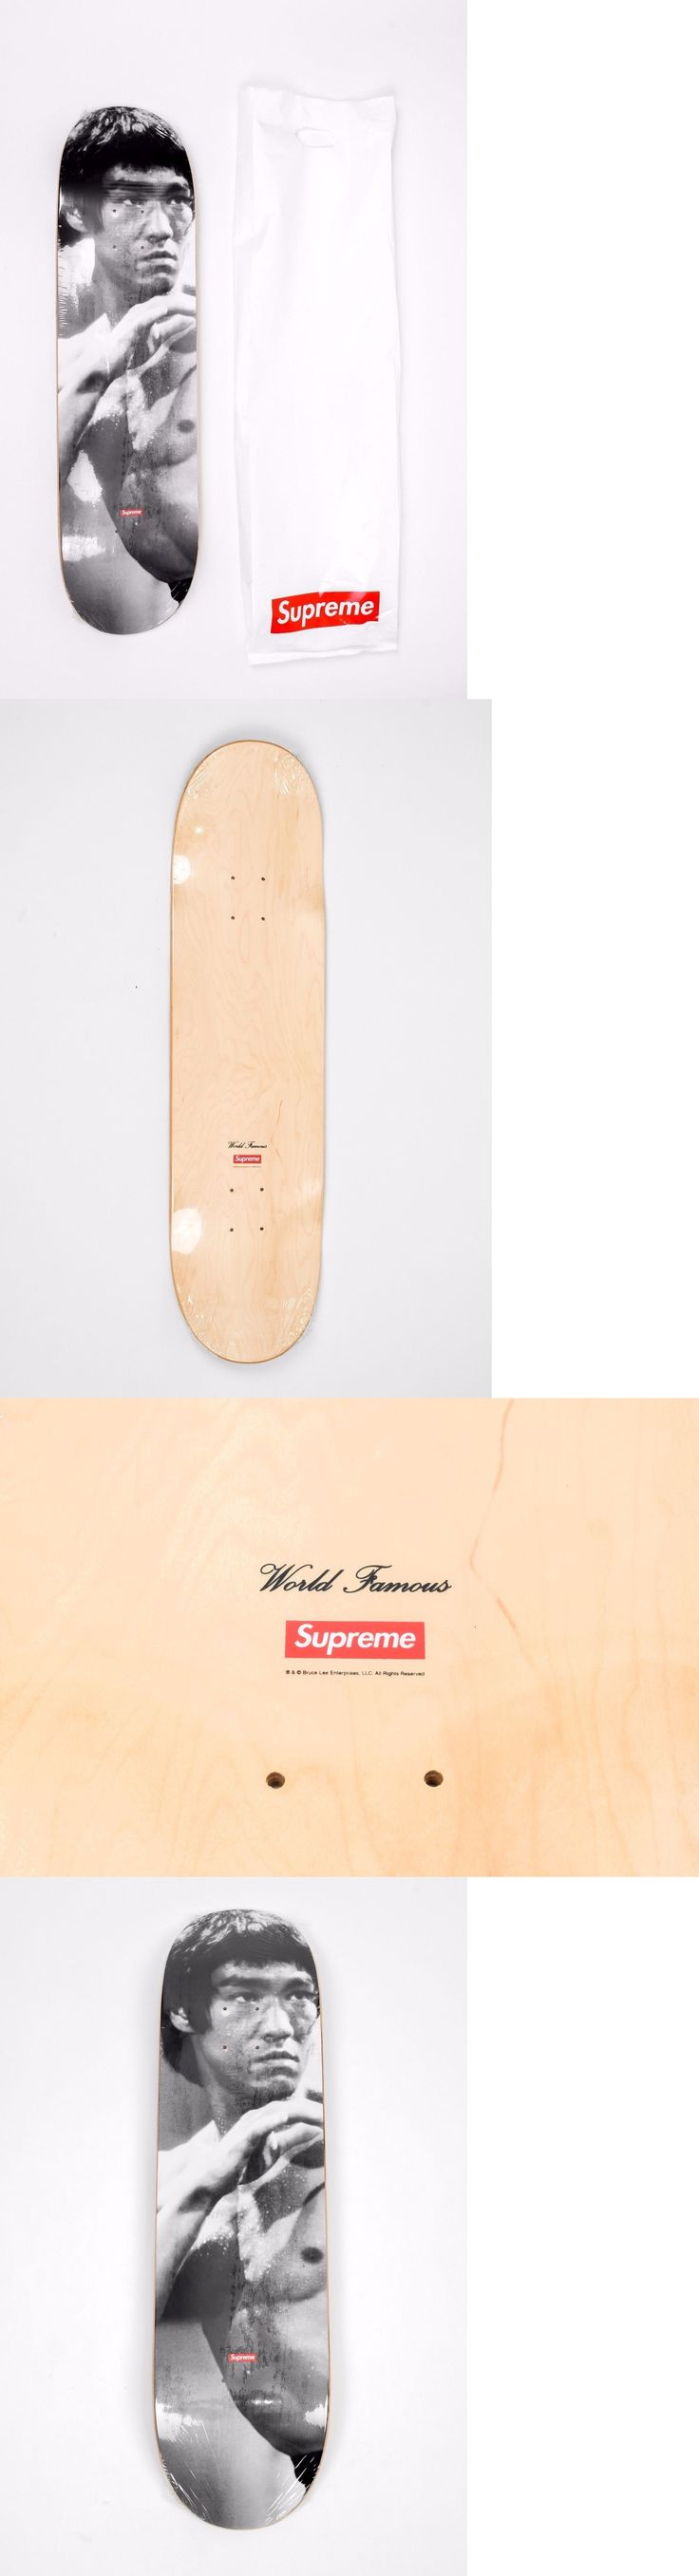 Decks 16263: New Supreme Fw13 Limited Edition Bruce Lee Skateboard Deck Red Box Logo + Bag Sb -> BUY IT NOW ONLY: $234.98 on eBay!